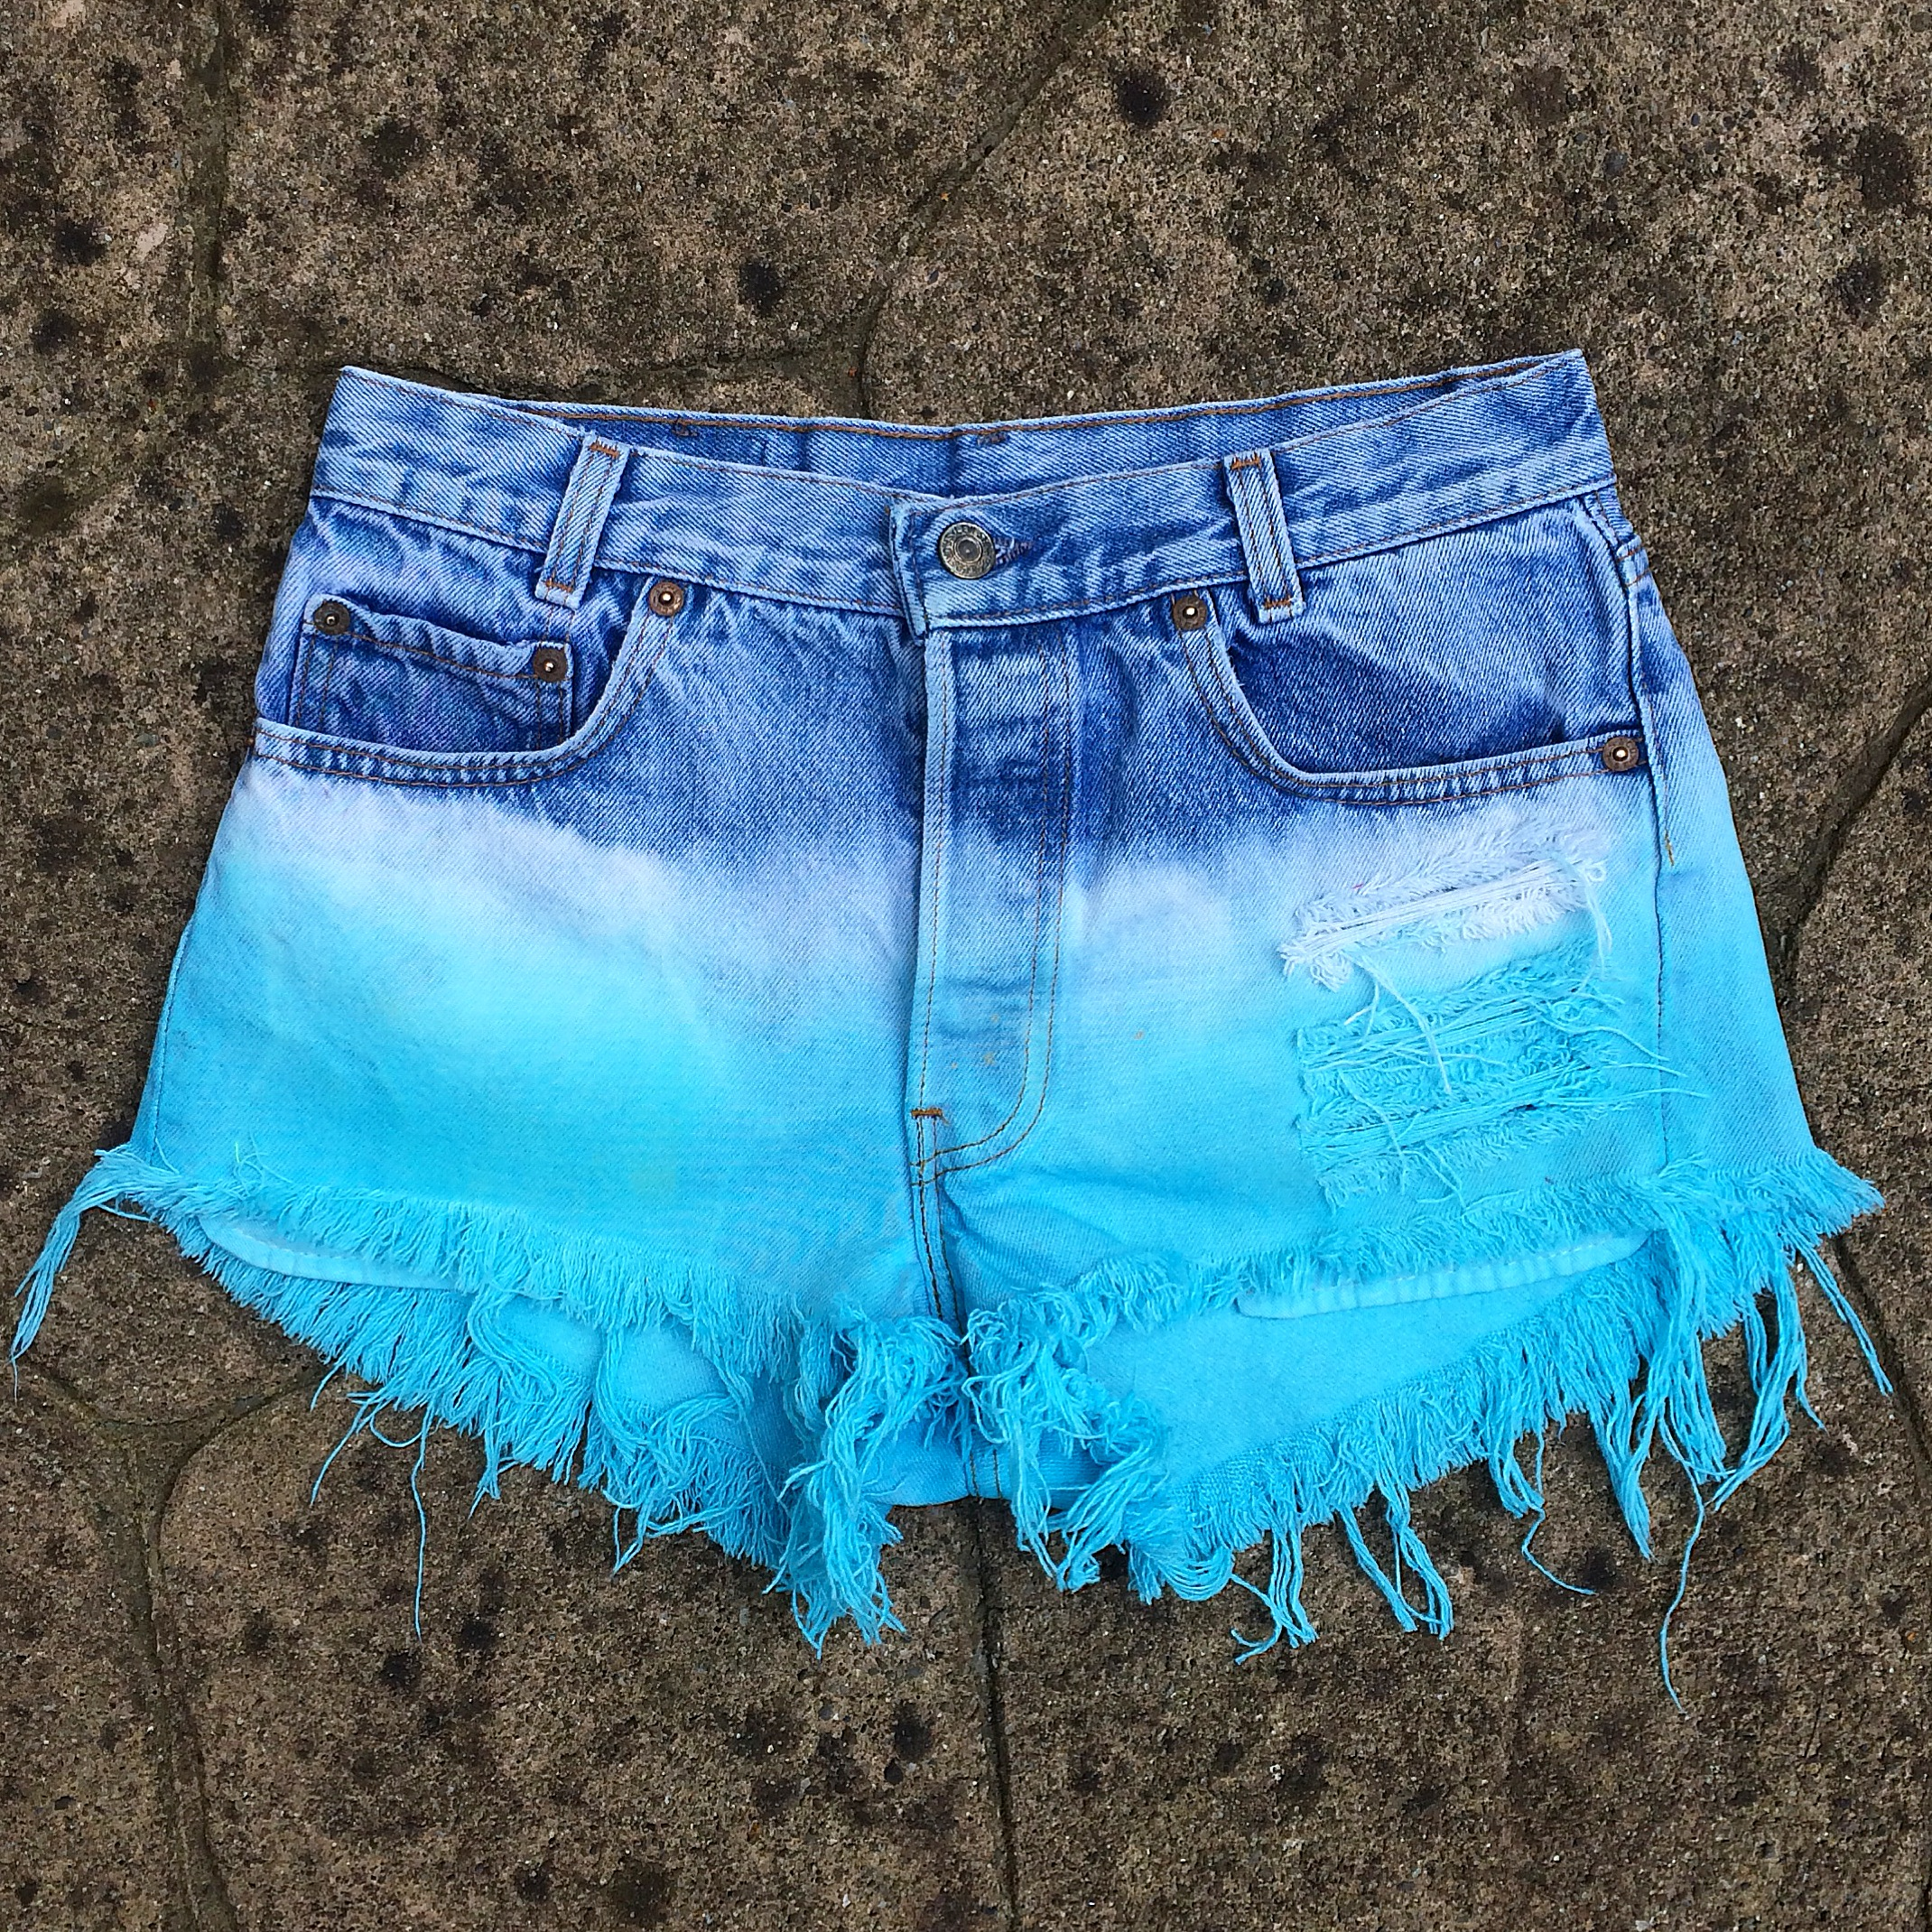 Bleached and DipDyed Turquoise